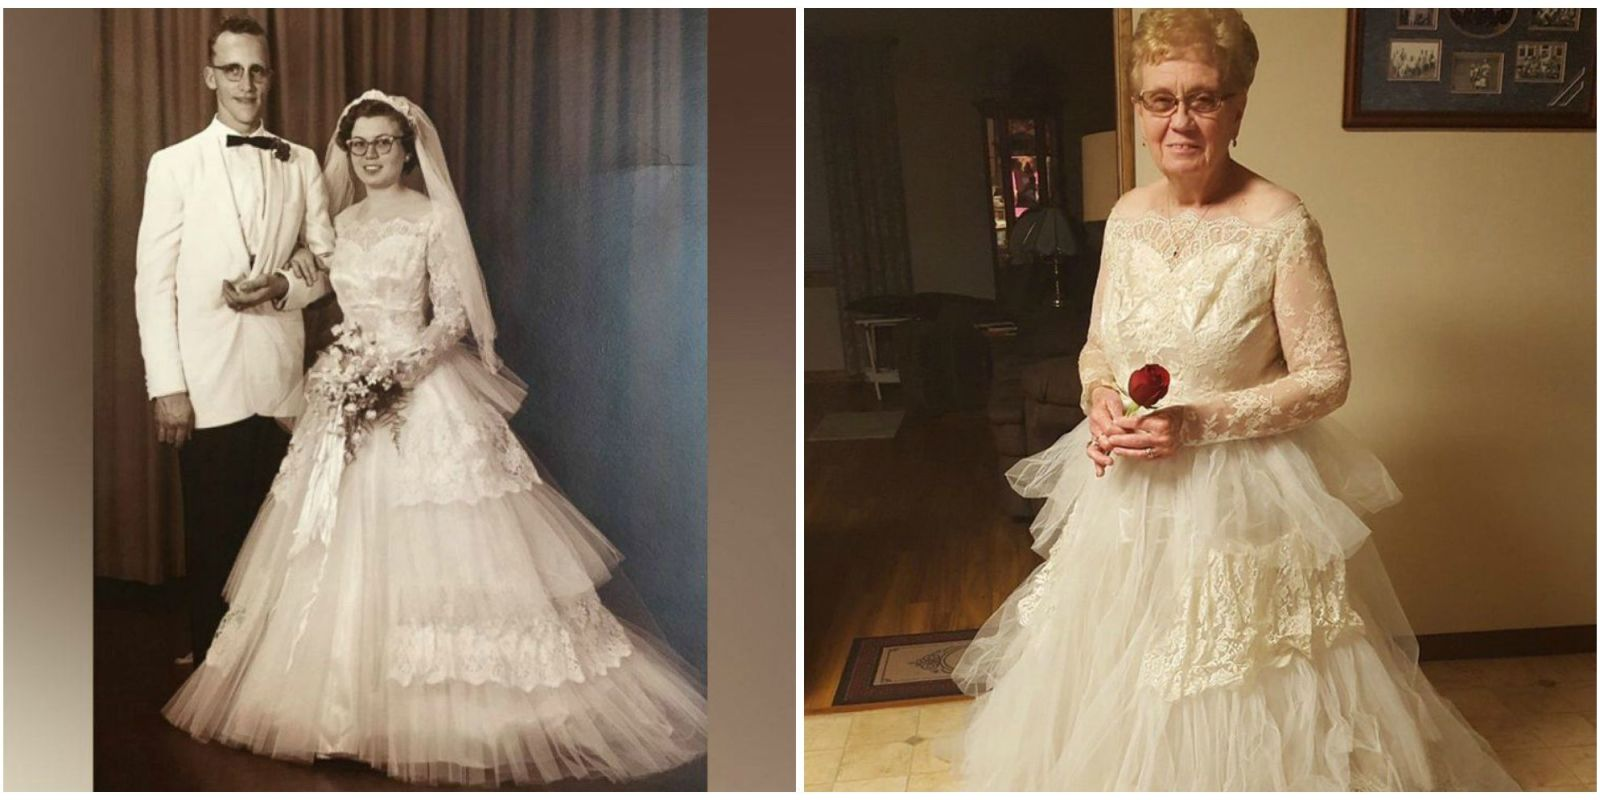 Woman Celebrates Her 60th Wedding Anniversary By Wearing Vintage 69 Bridal Gown